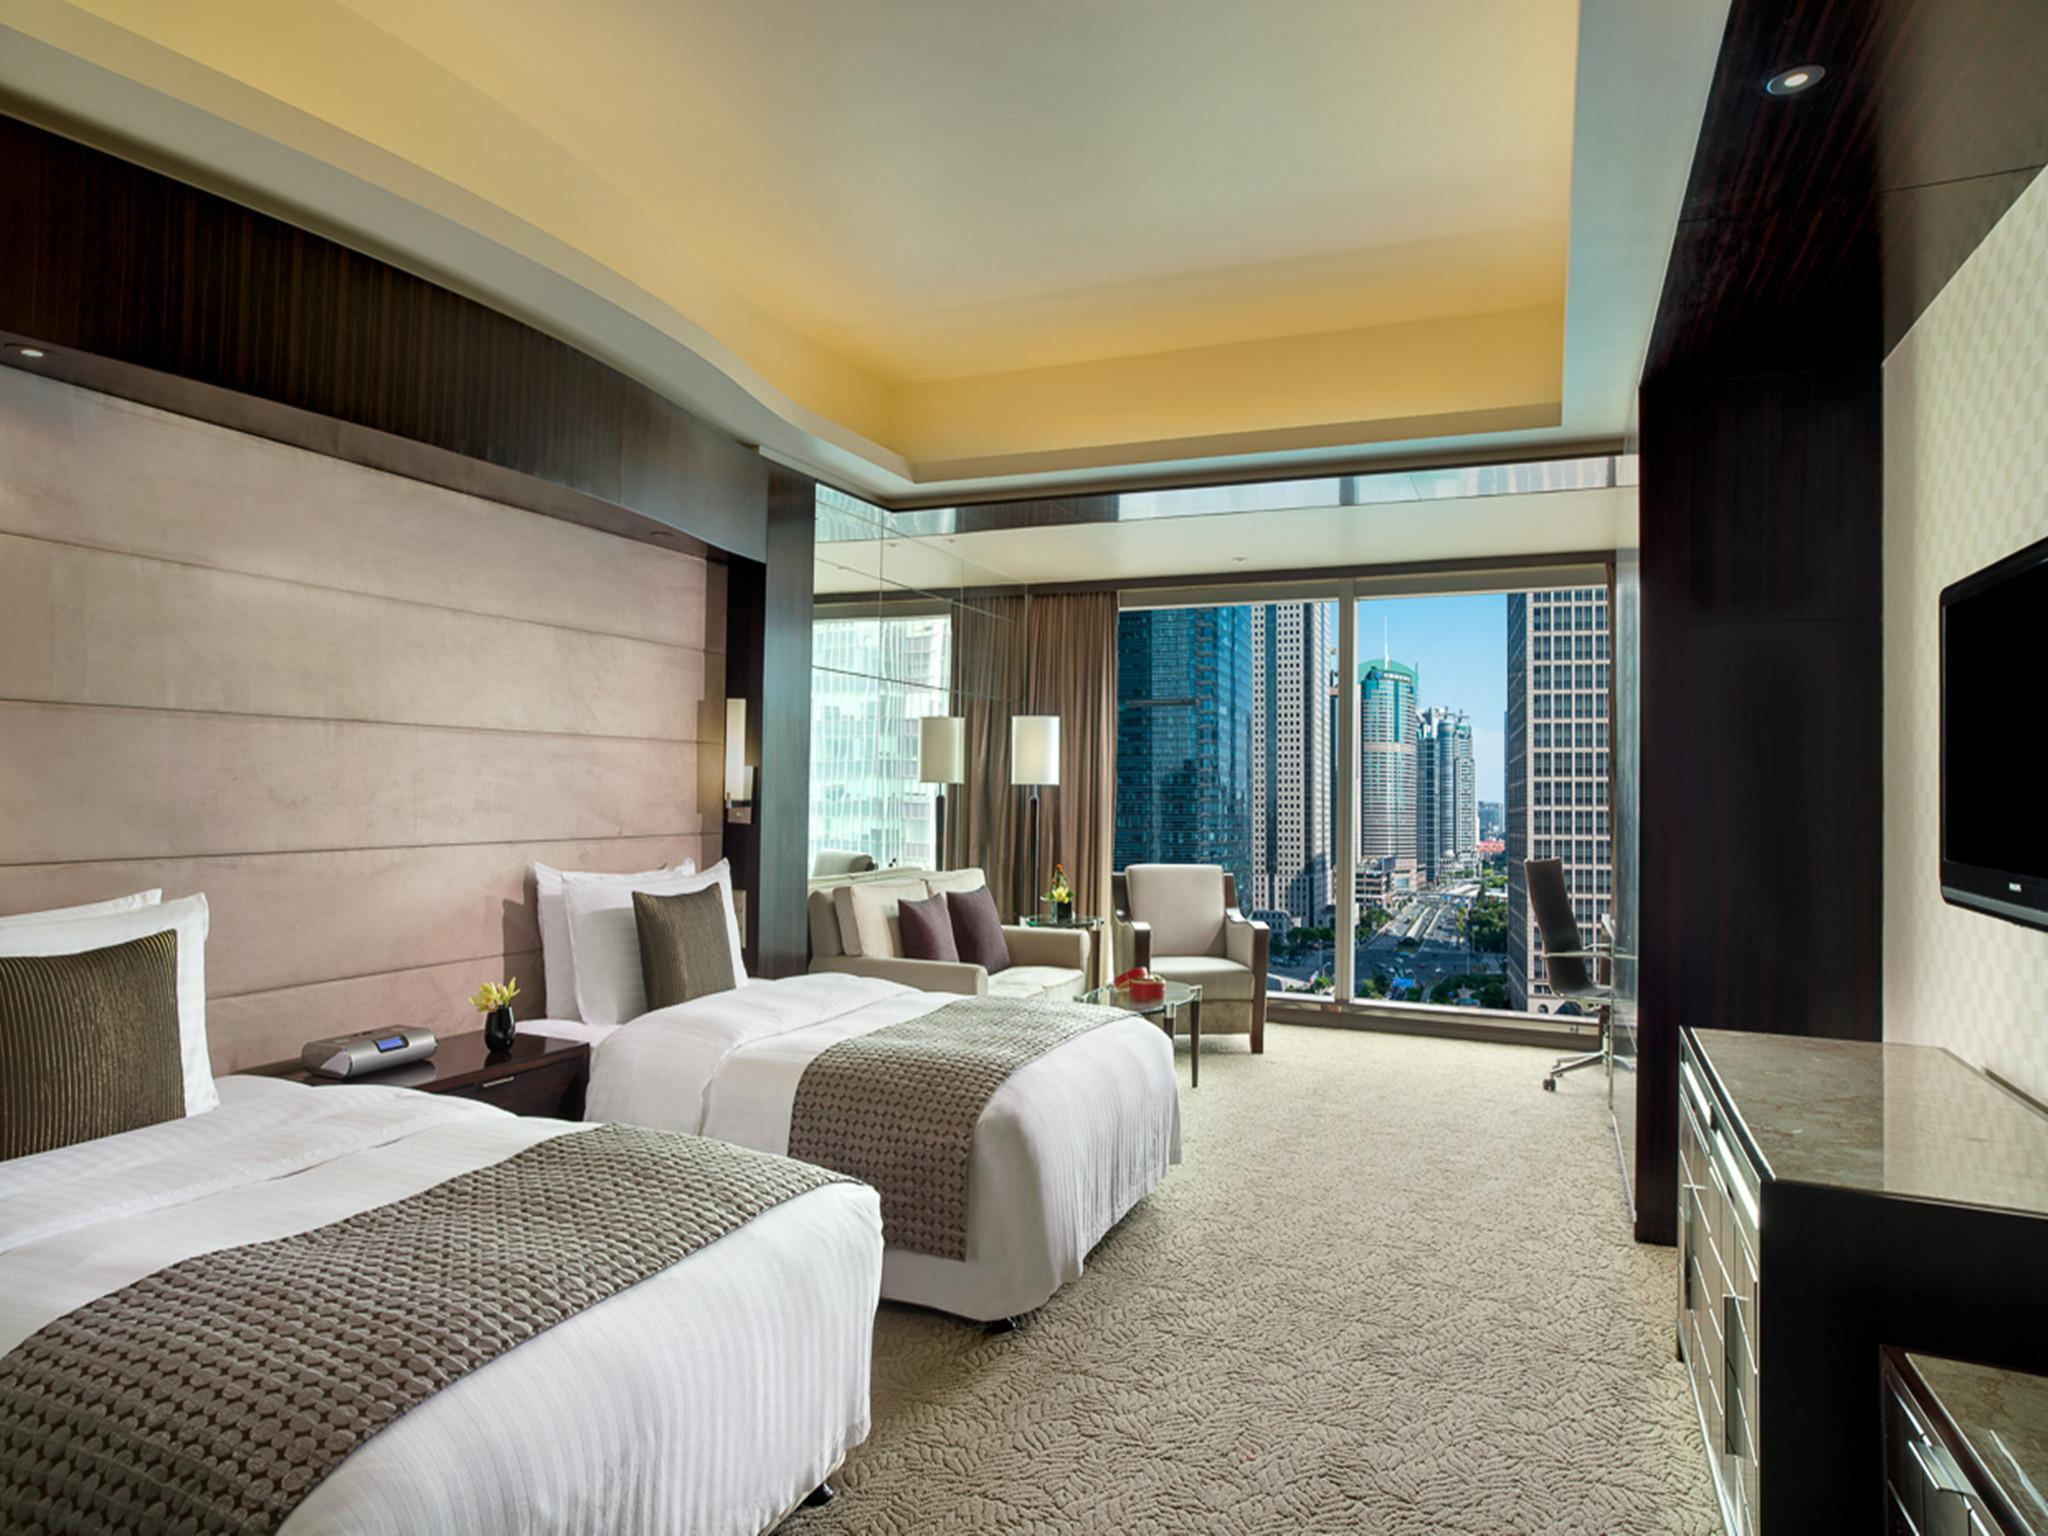 Rum Grand Executive med stadsutsikt (Grand Executive City View Room)